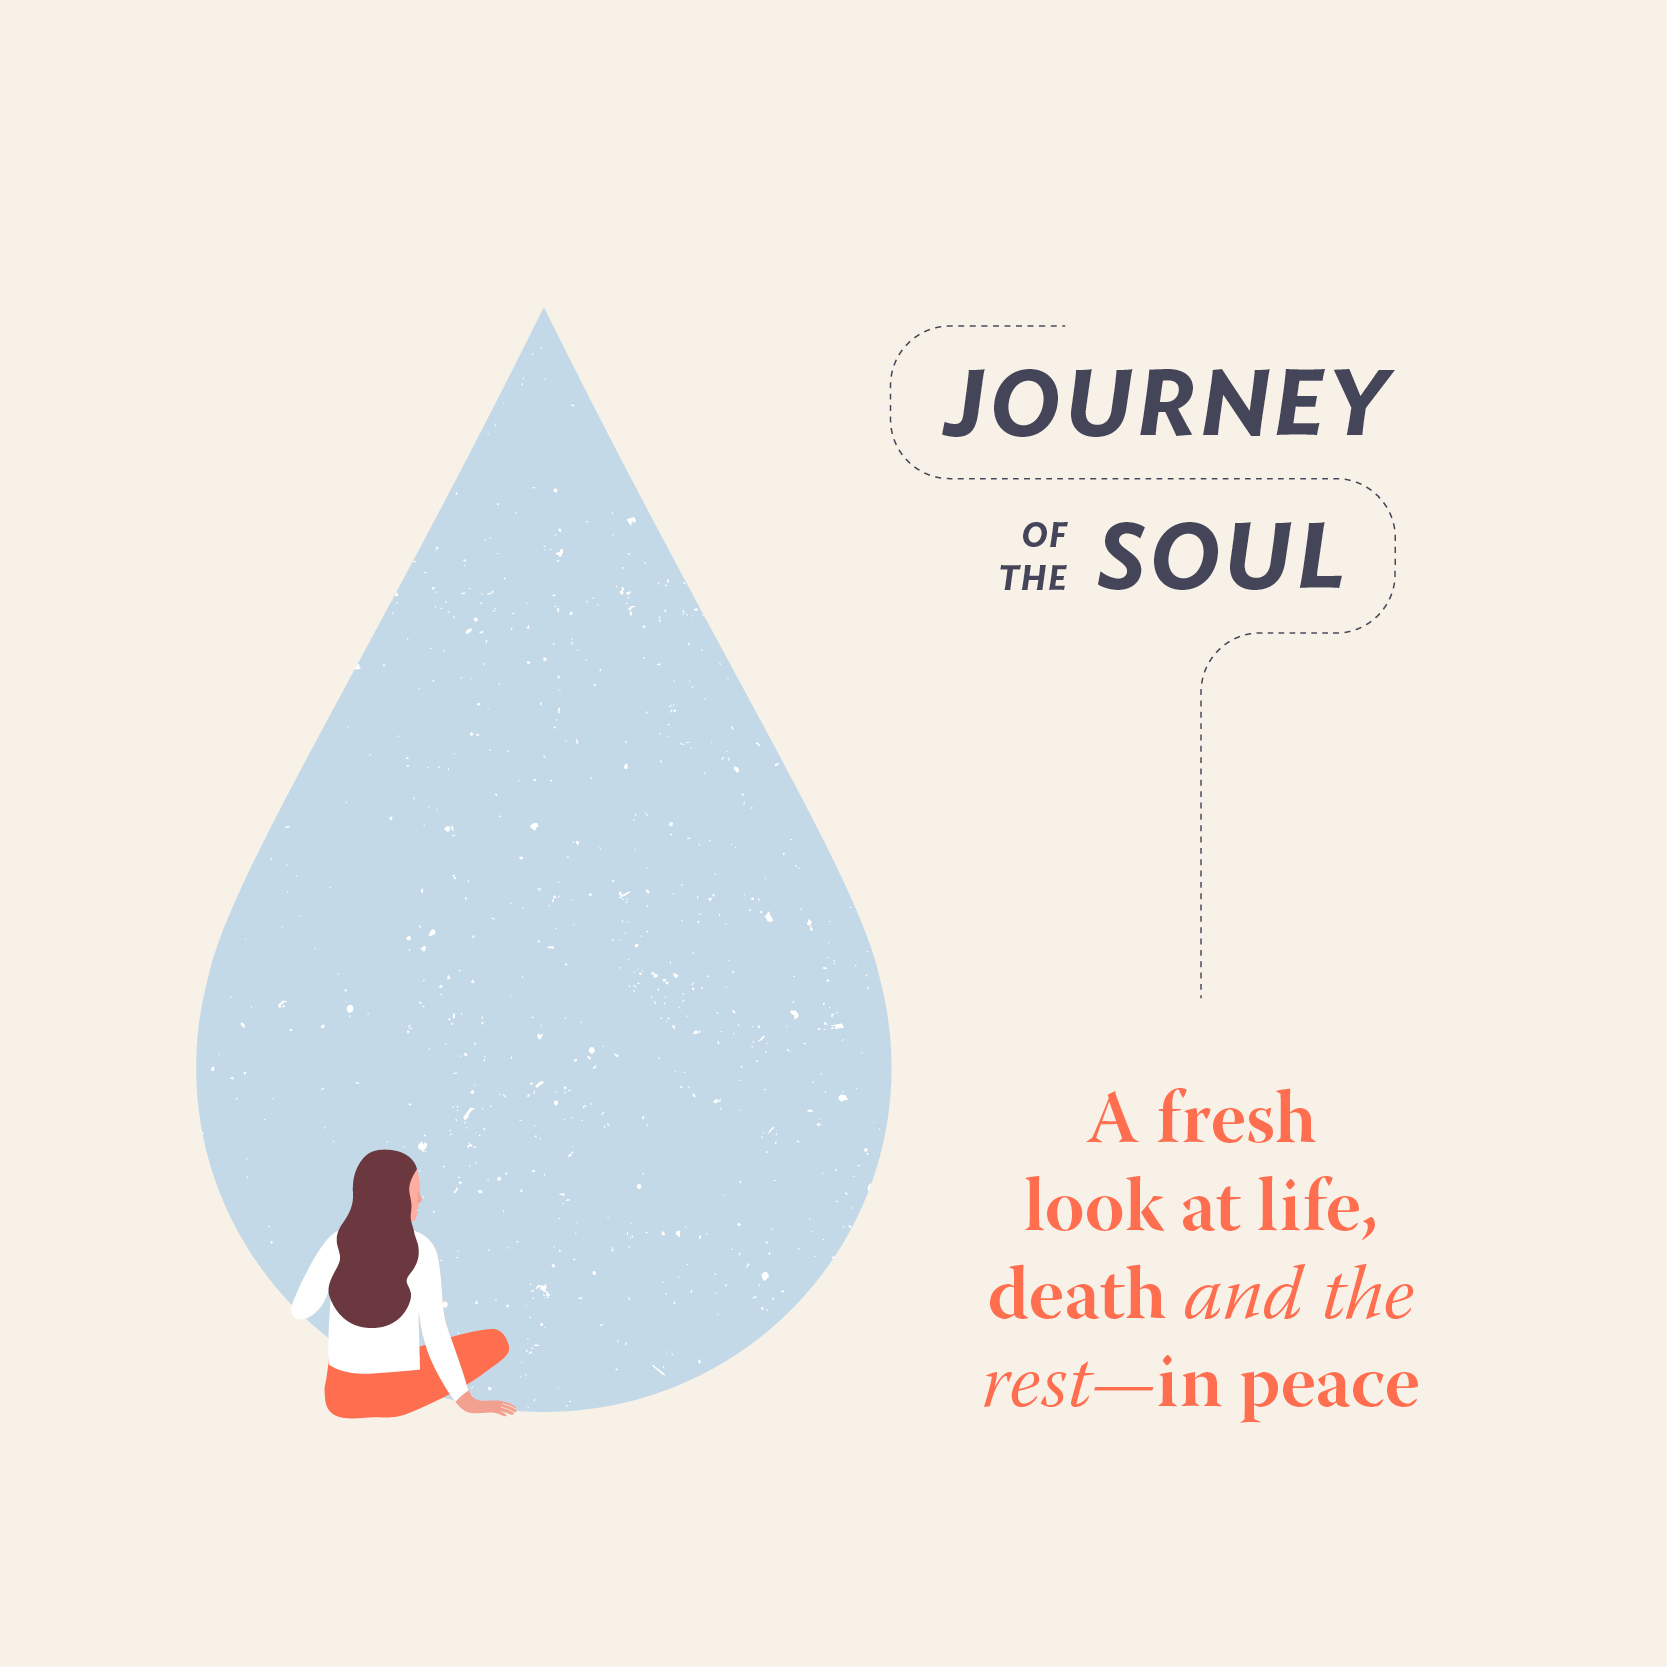 Journey of the Soul: A Fresh Look at Life, Death, and the Rest—in Peace